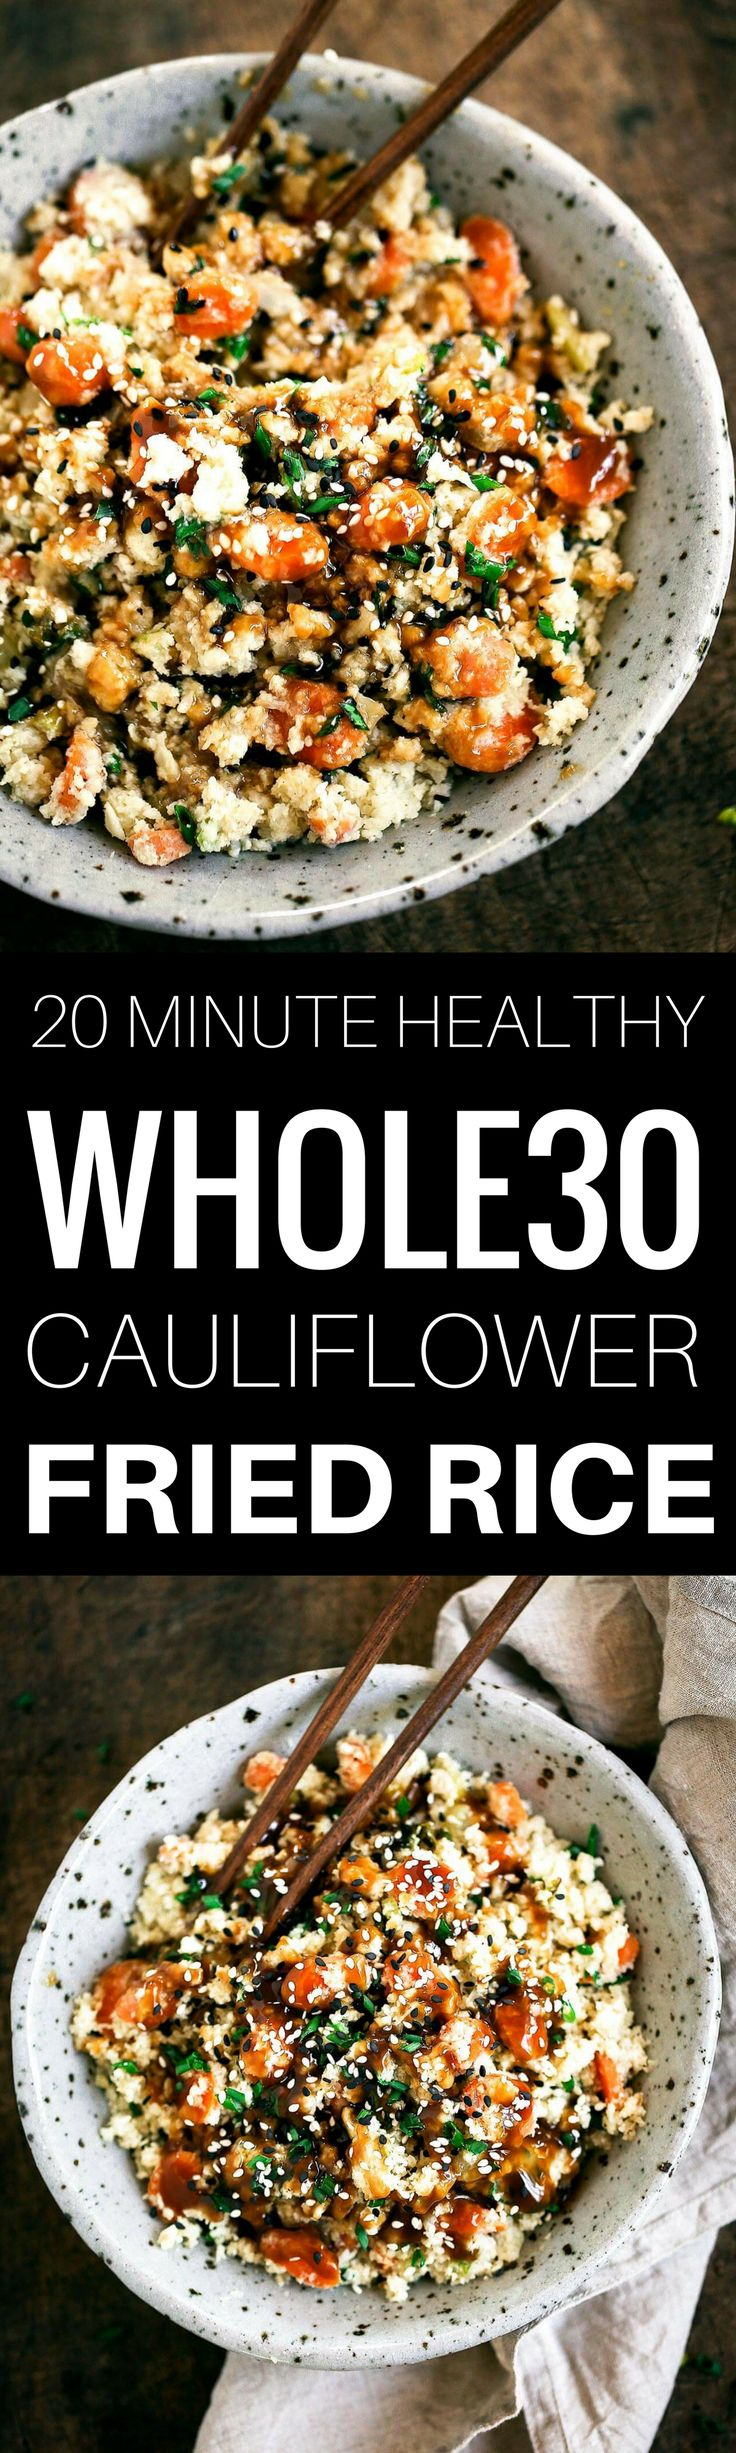 "Easy whole30 and paleo cauliflower fried rice recipe. Ready in 20 minutes. Make ahead and freeze! A healthy and fun family dinner. Topped with a homemade date sweetened gooey silky smooth ""soy sauce"", green onions, and sesame seeds. whole30 meal plan. Easy whole30 dinner recipes. Easy whole30 dinner recipes. Whole30 recipes. Whole30 lunch. Whole30 meal planning. Whole30 meal prep. Healthy paleo meals. Healthy Whole30 recipes. Easy Whole30 recipes. Easy whole30 dinner recipes. Best..."